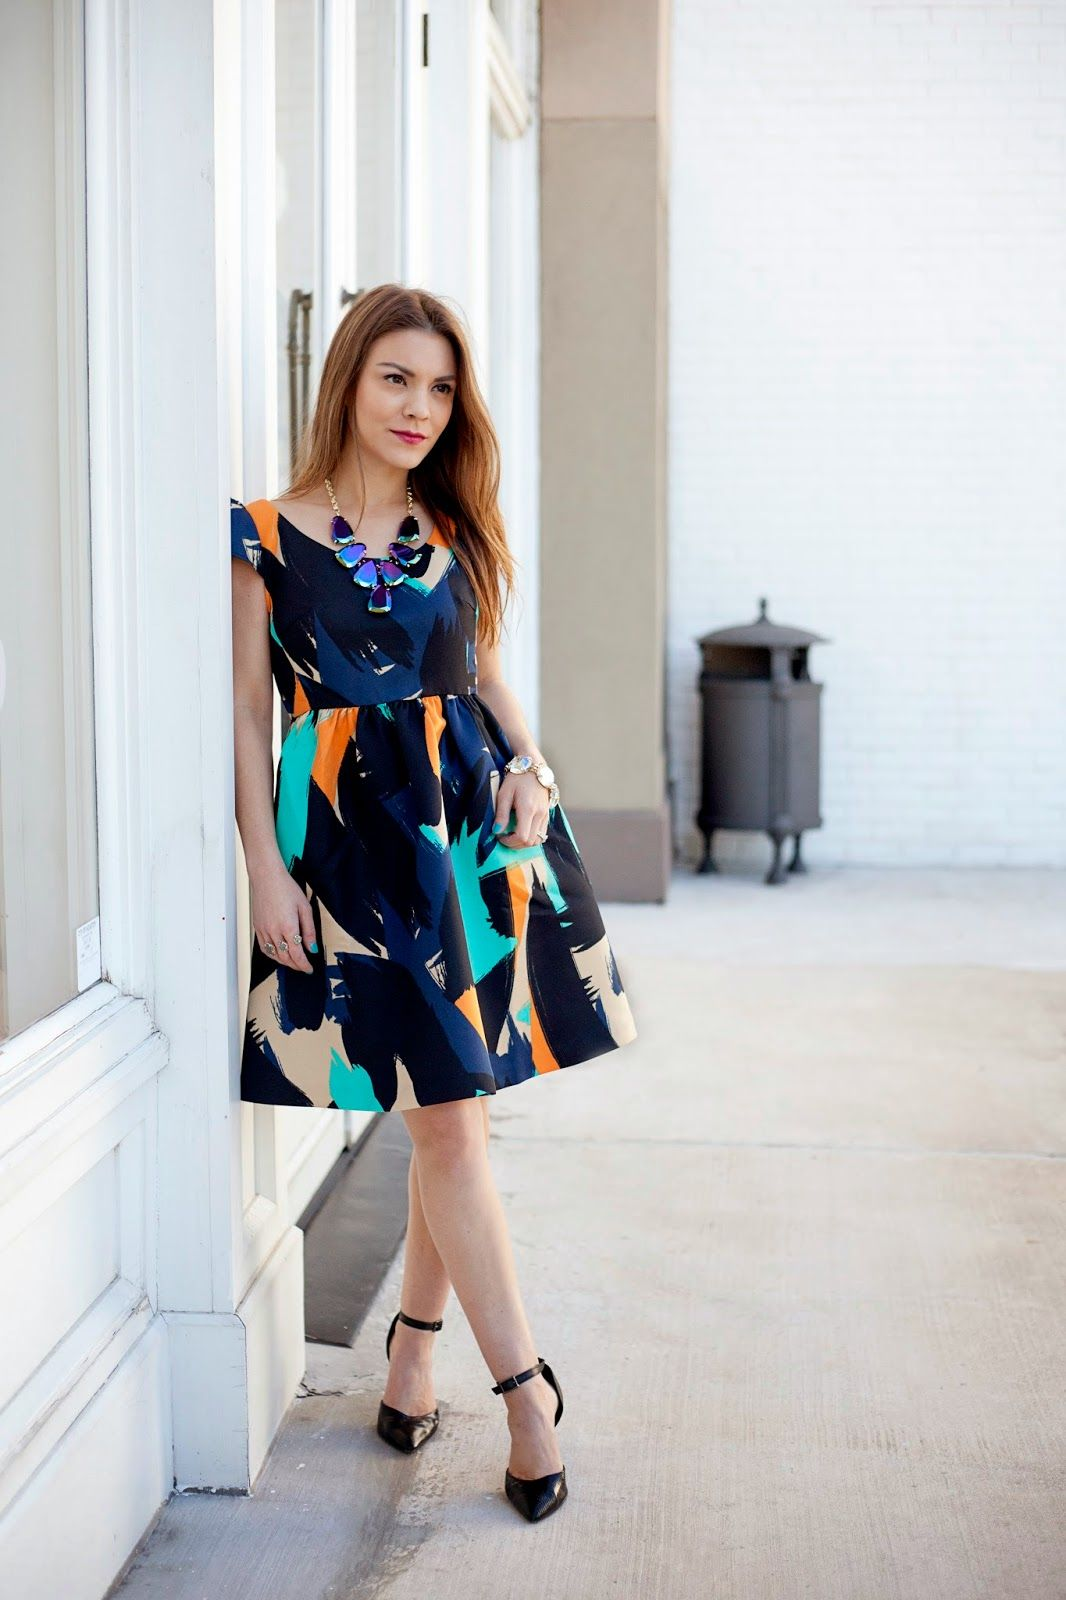 The must-have dress from #anthropologie #allzedetails #anthropetites